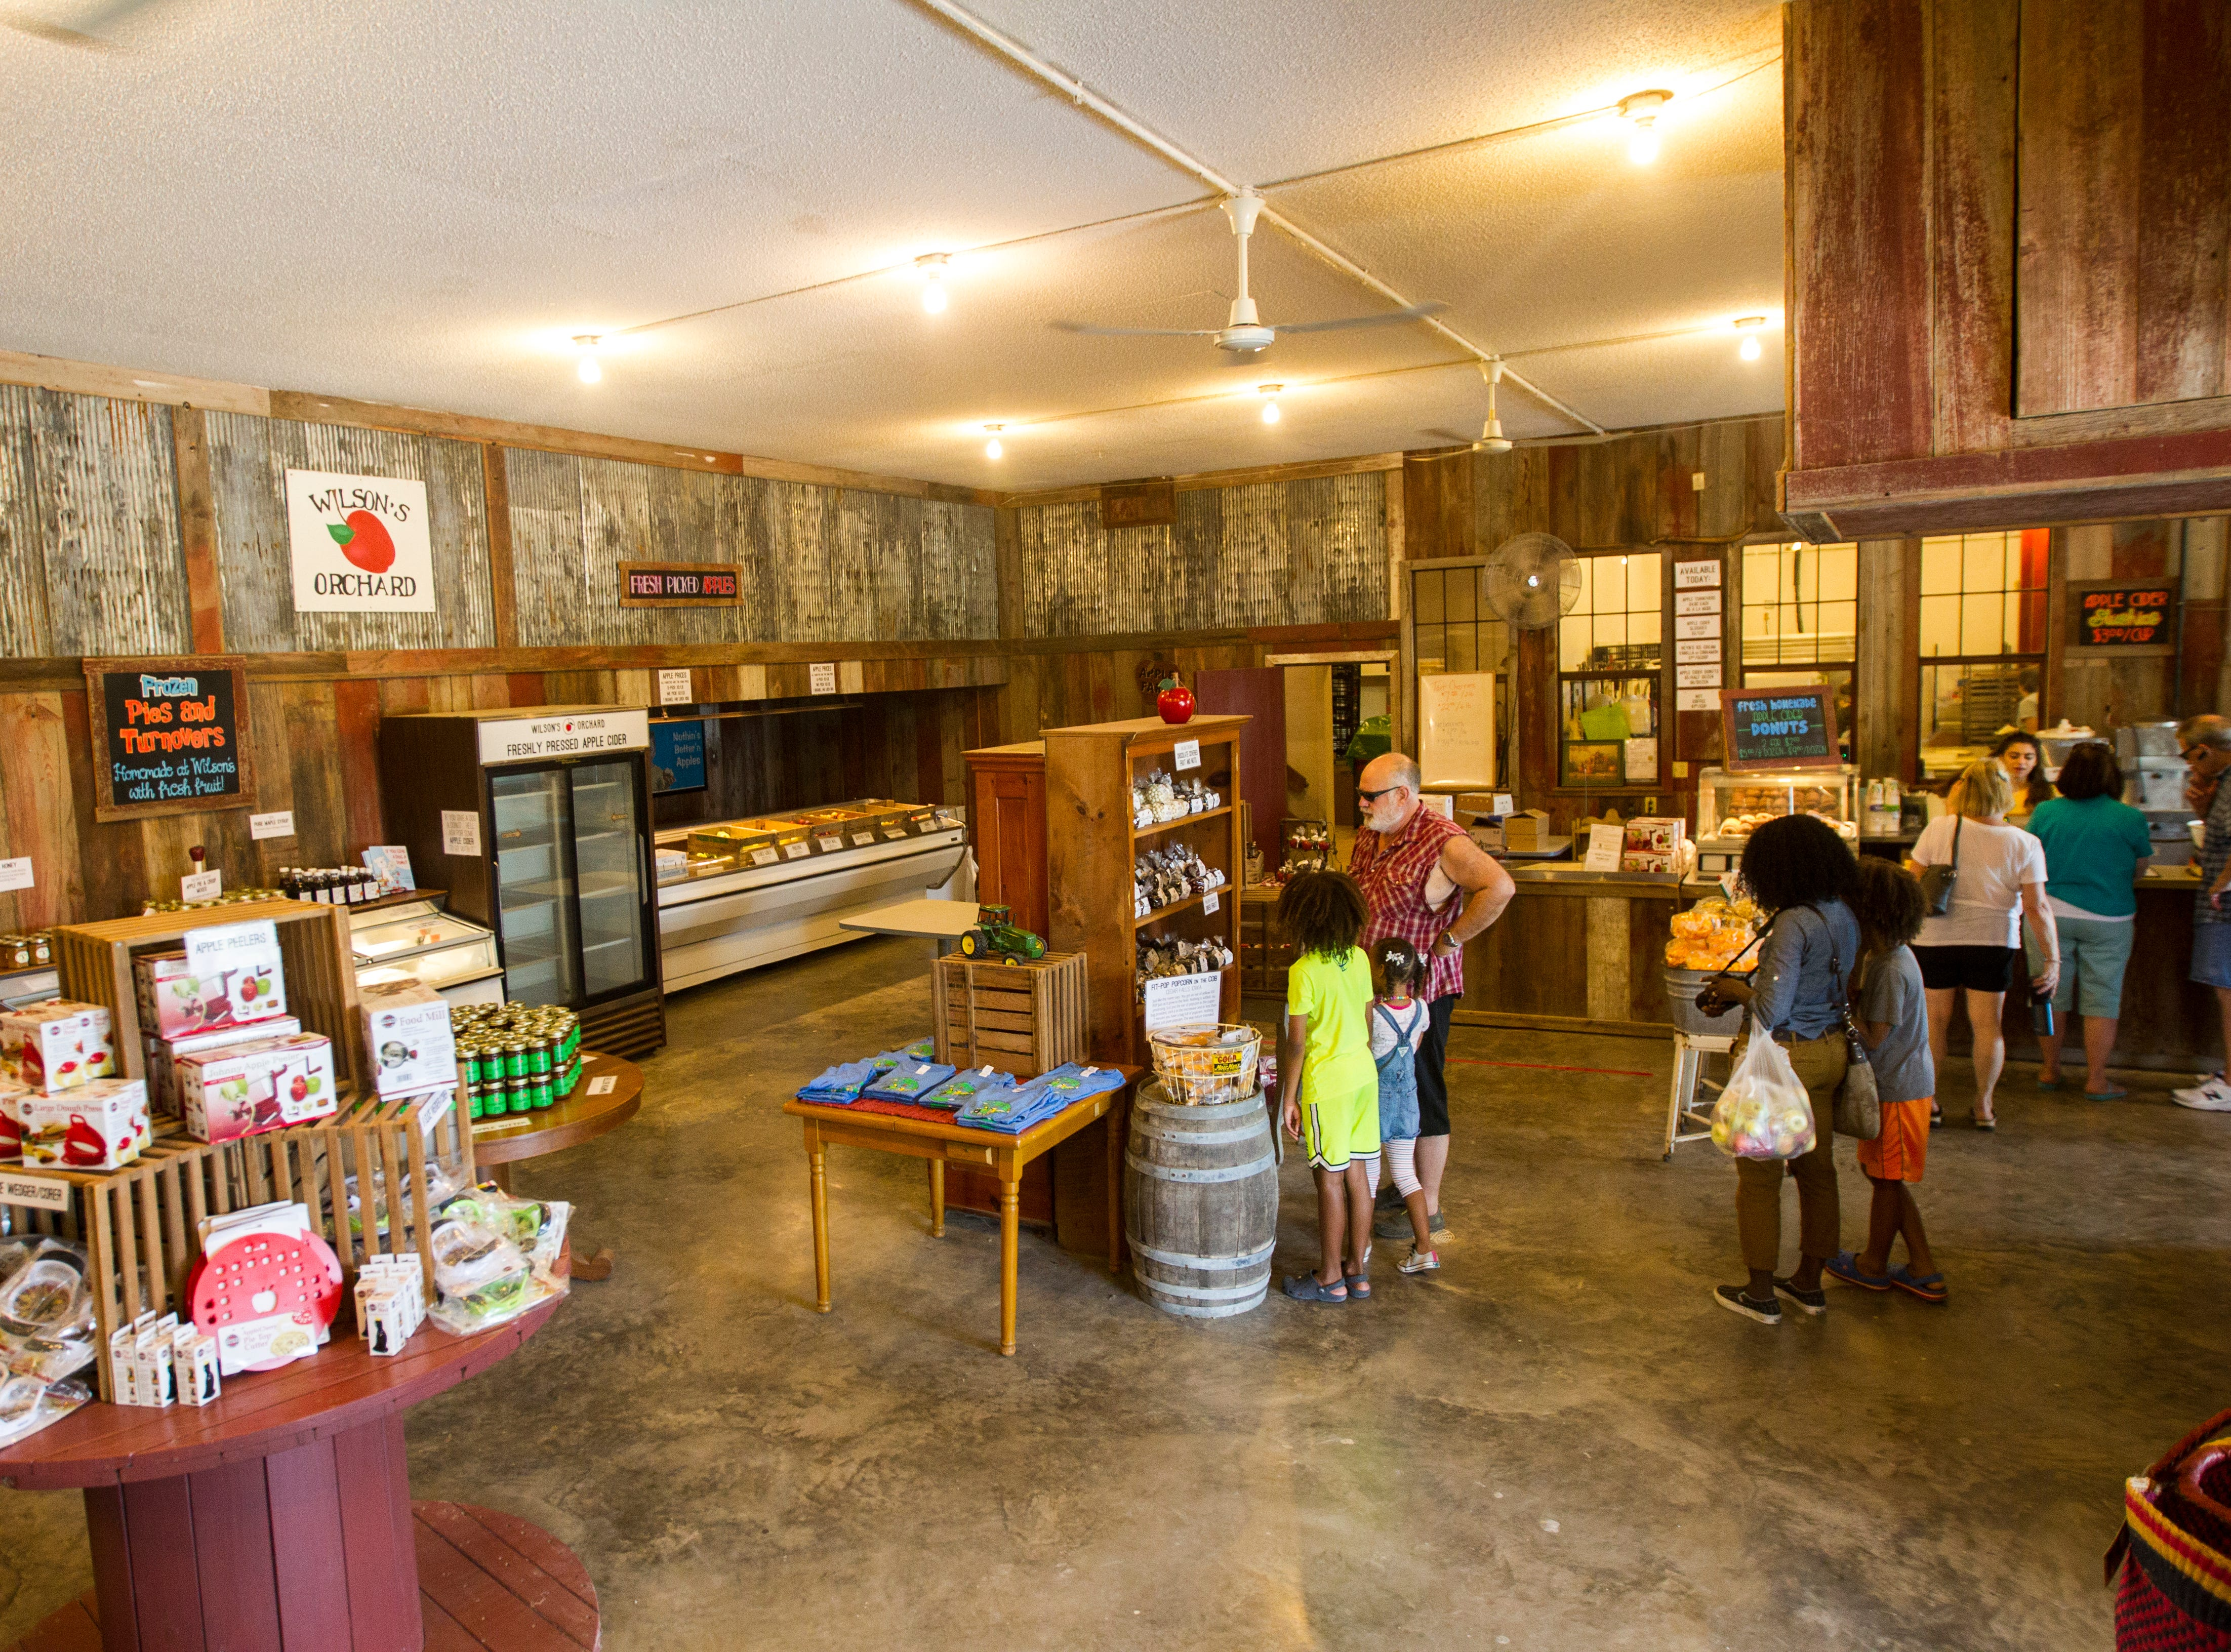 Customers shop inside on Wednesday, Aug. 1, 2018, at Wilson's Apple Orchard in Iowa City, Iowa. The orchard is open from Aug. 1 through Oct. 31, 10 a.m. to 6 p.m daily.